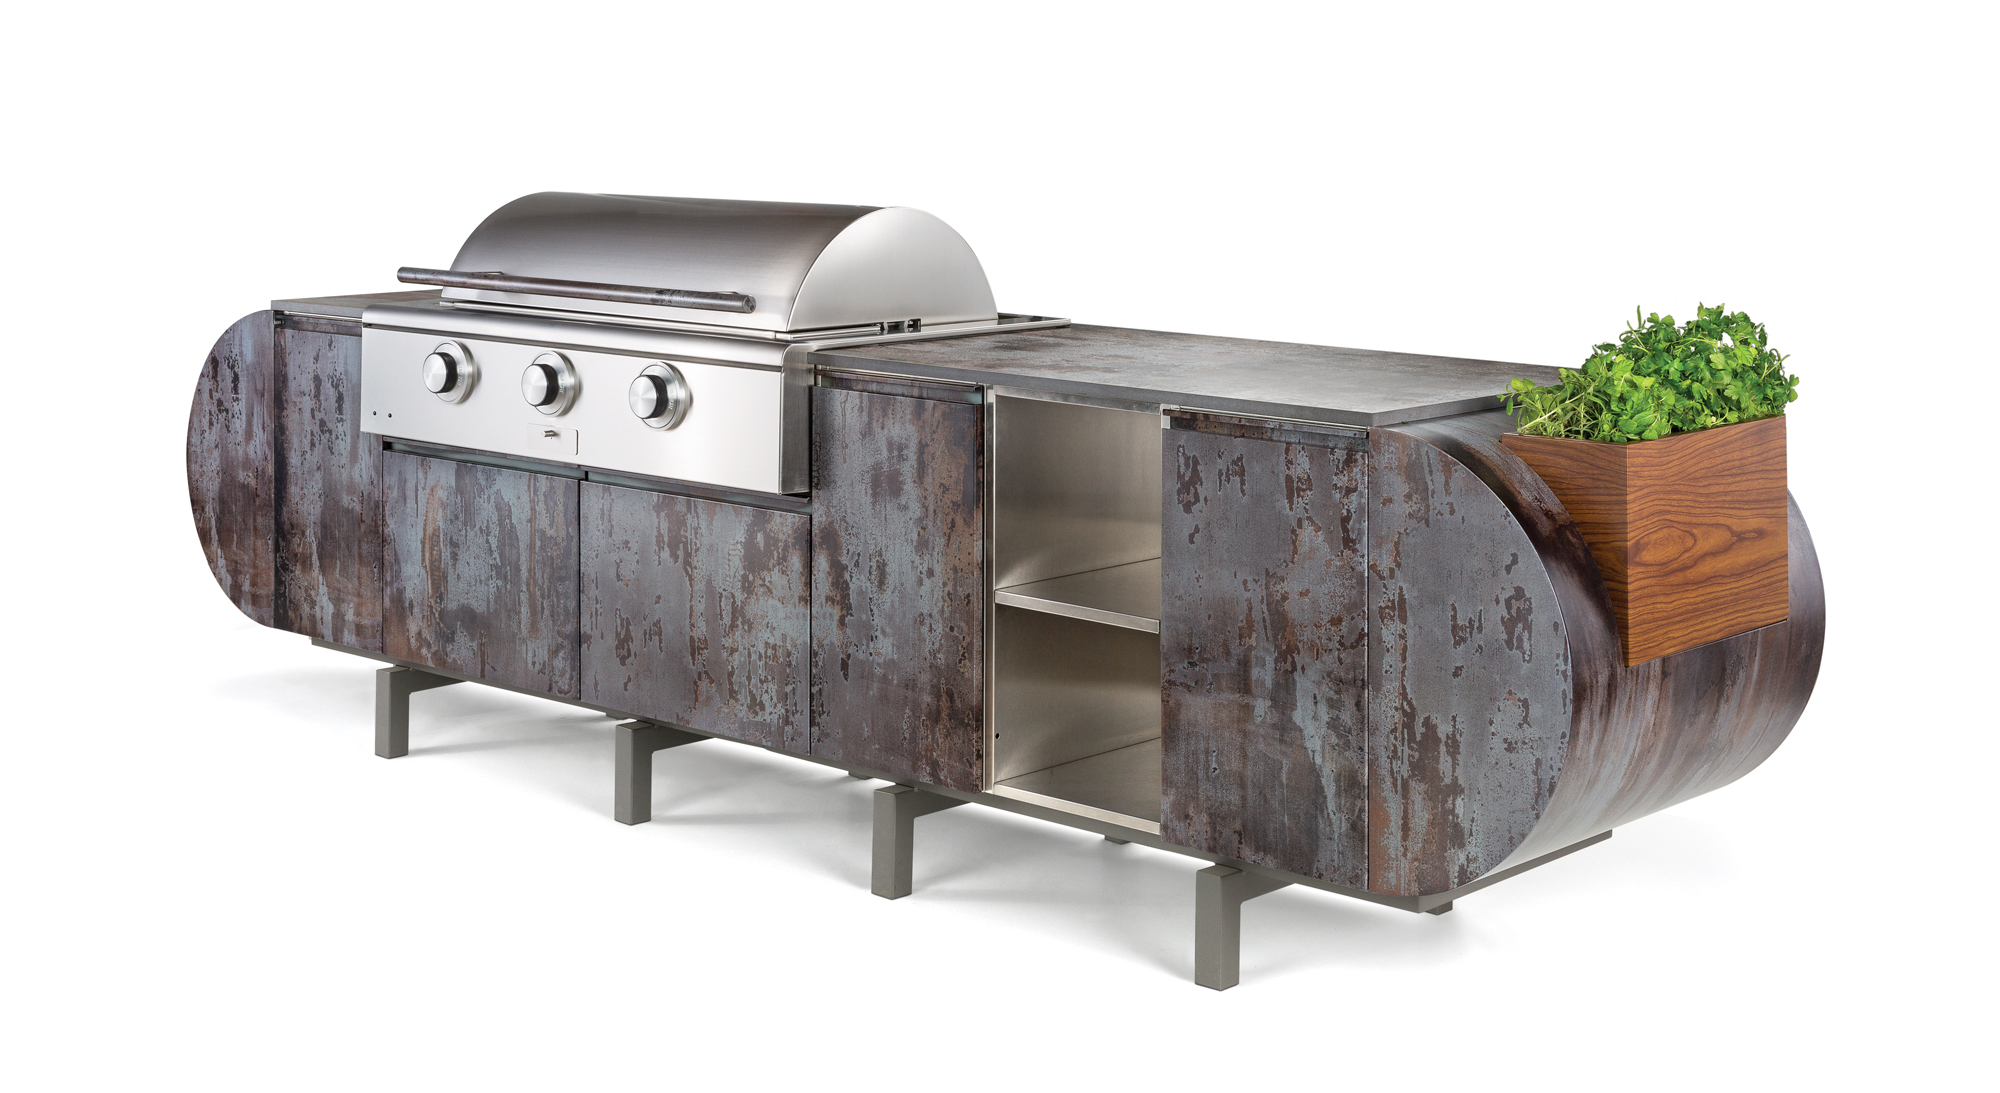 Barbecue Pierre Design Barbecue Pierre Design Barbecue With Barbecue Pierre